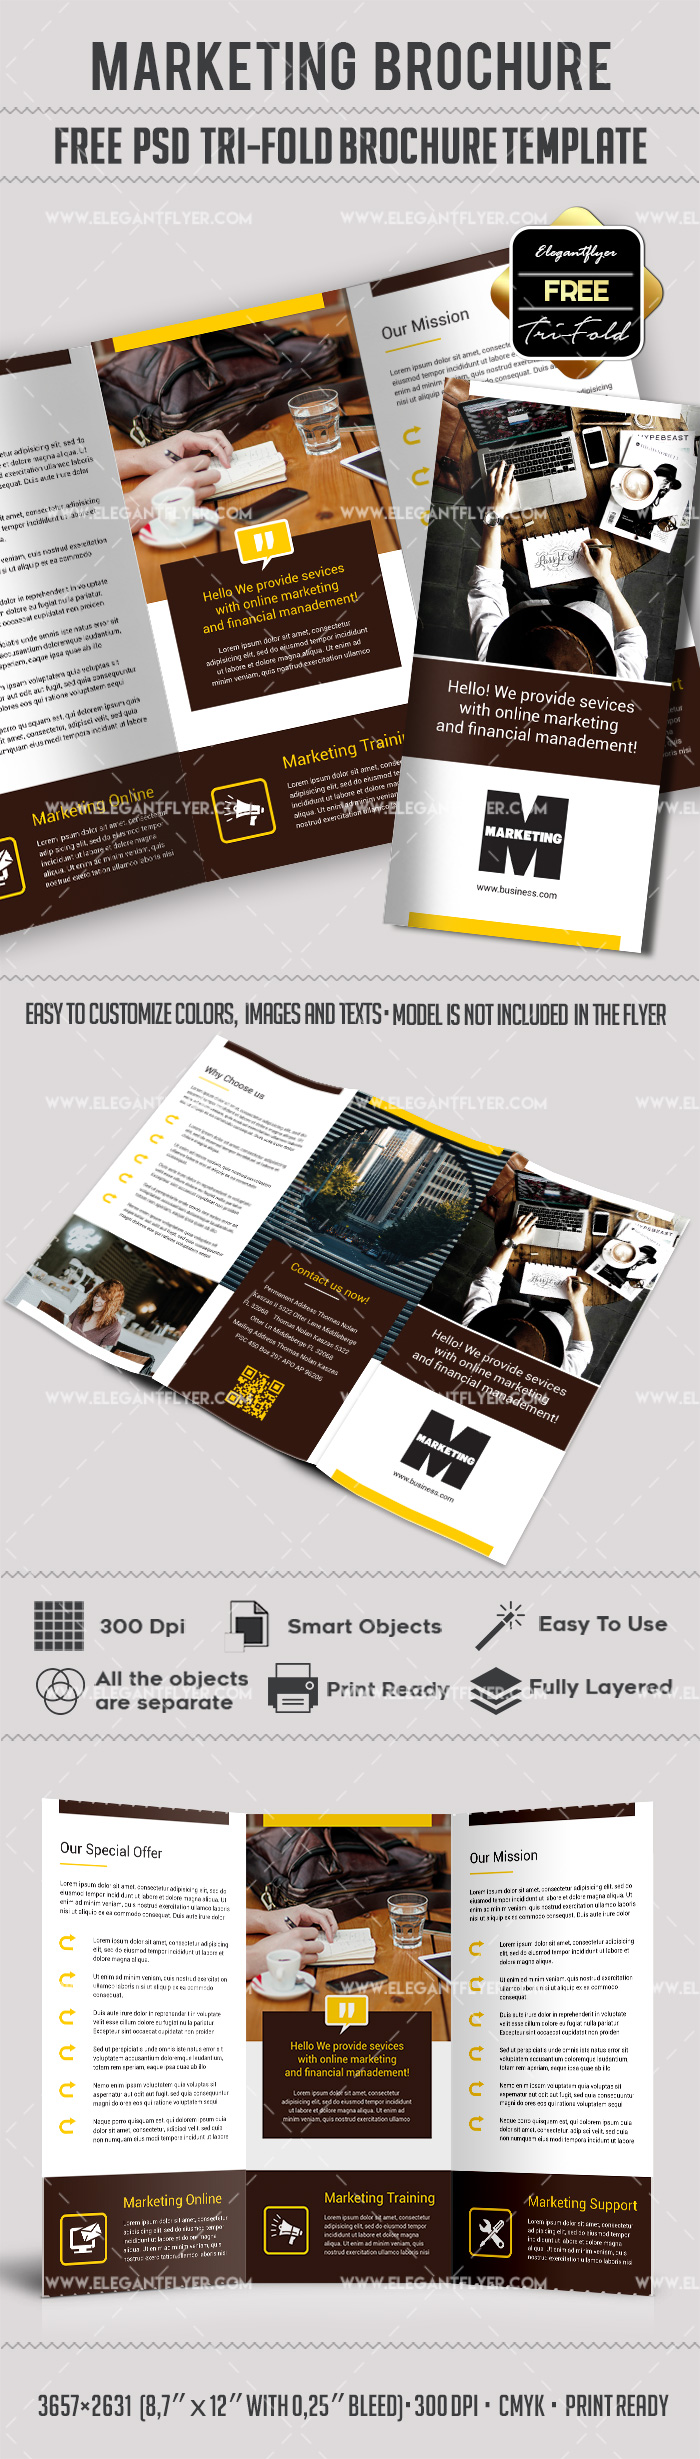 free printable brochure templates online - marketing free tri fold psd brochure template by